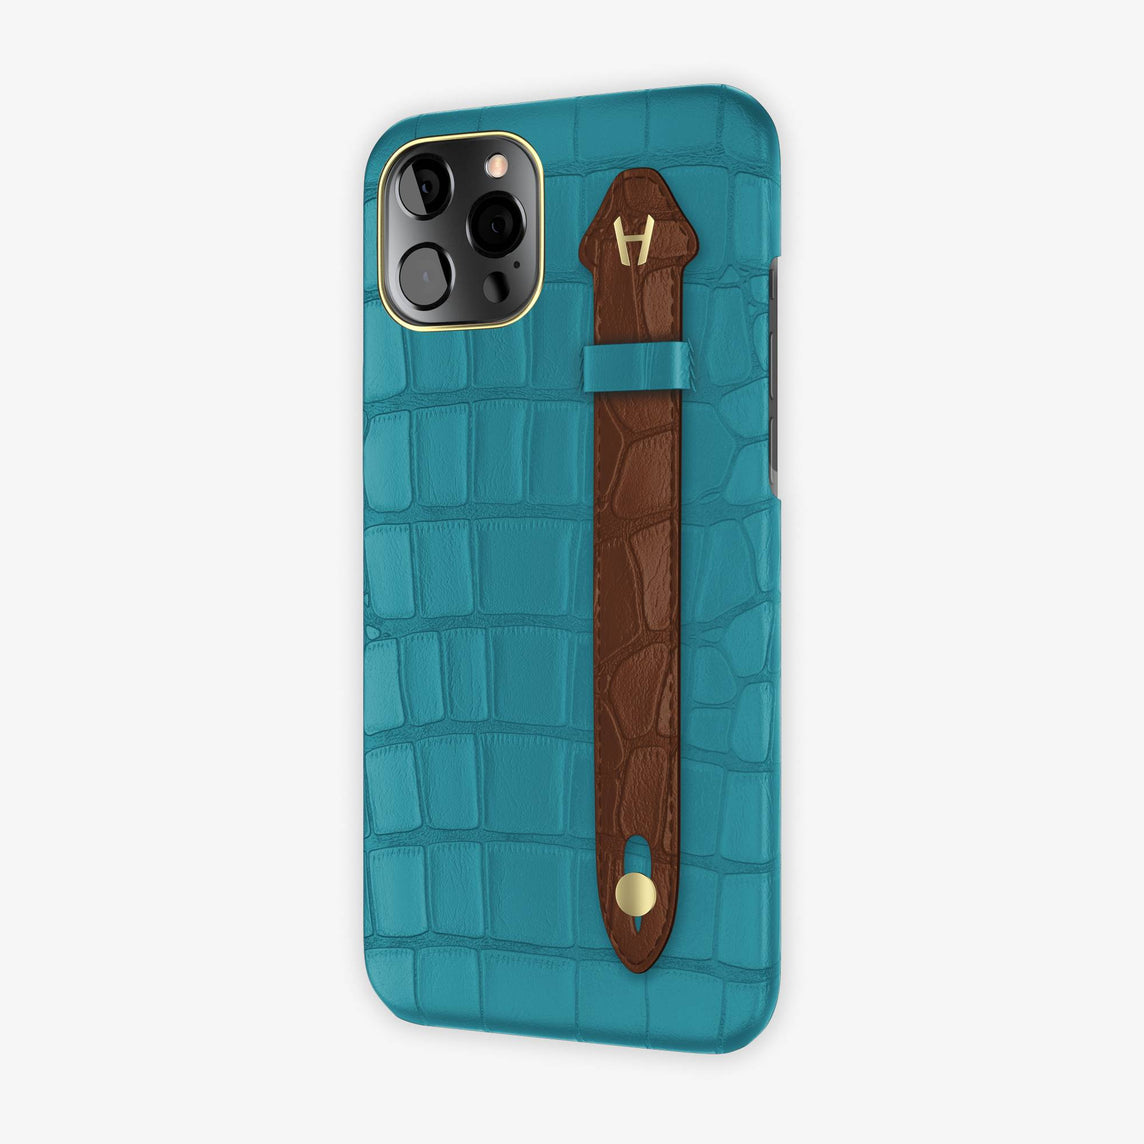 Alligator Side Finger Case iPhone 12 Pro Max | Blue Teal/Brown - Yellow Gold